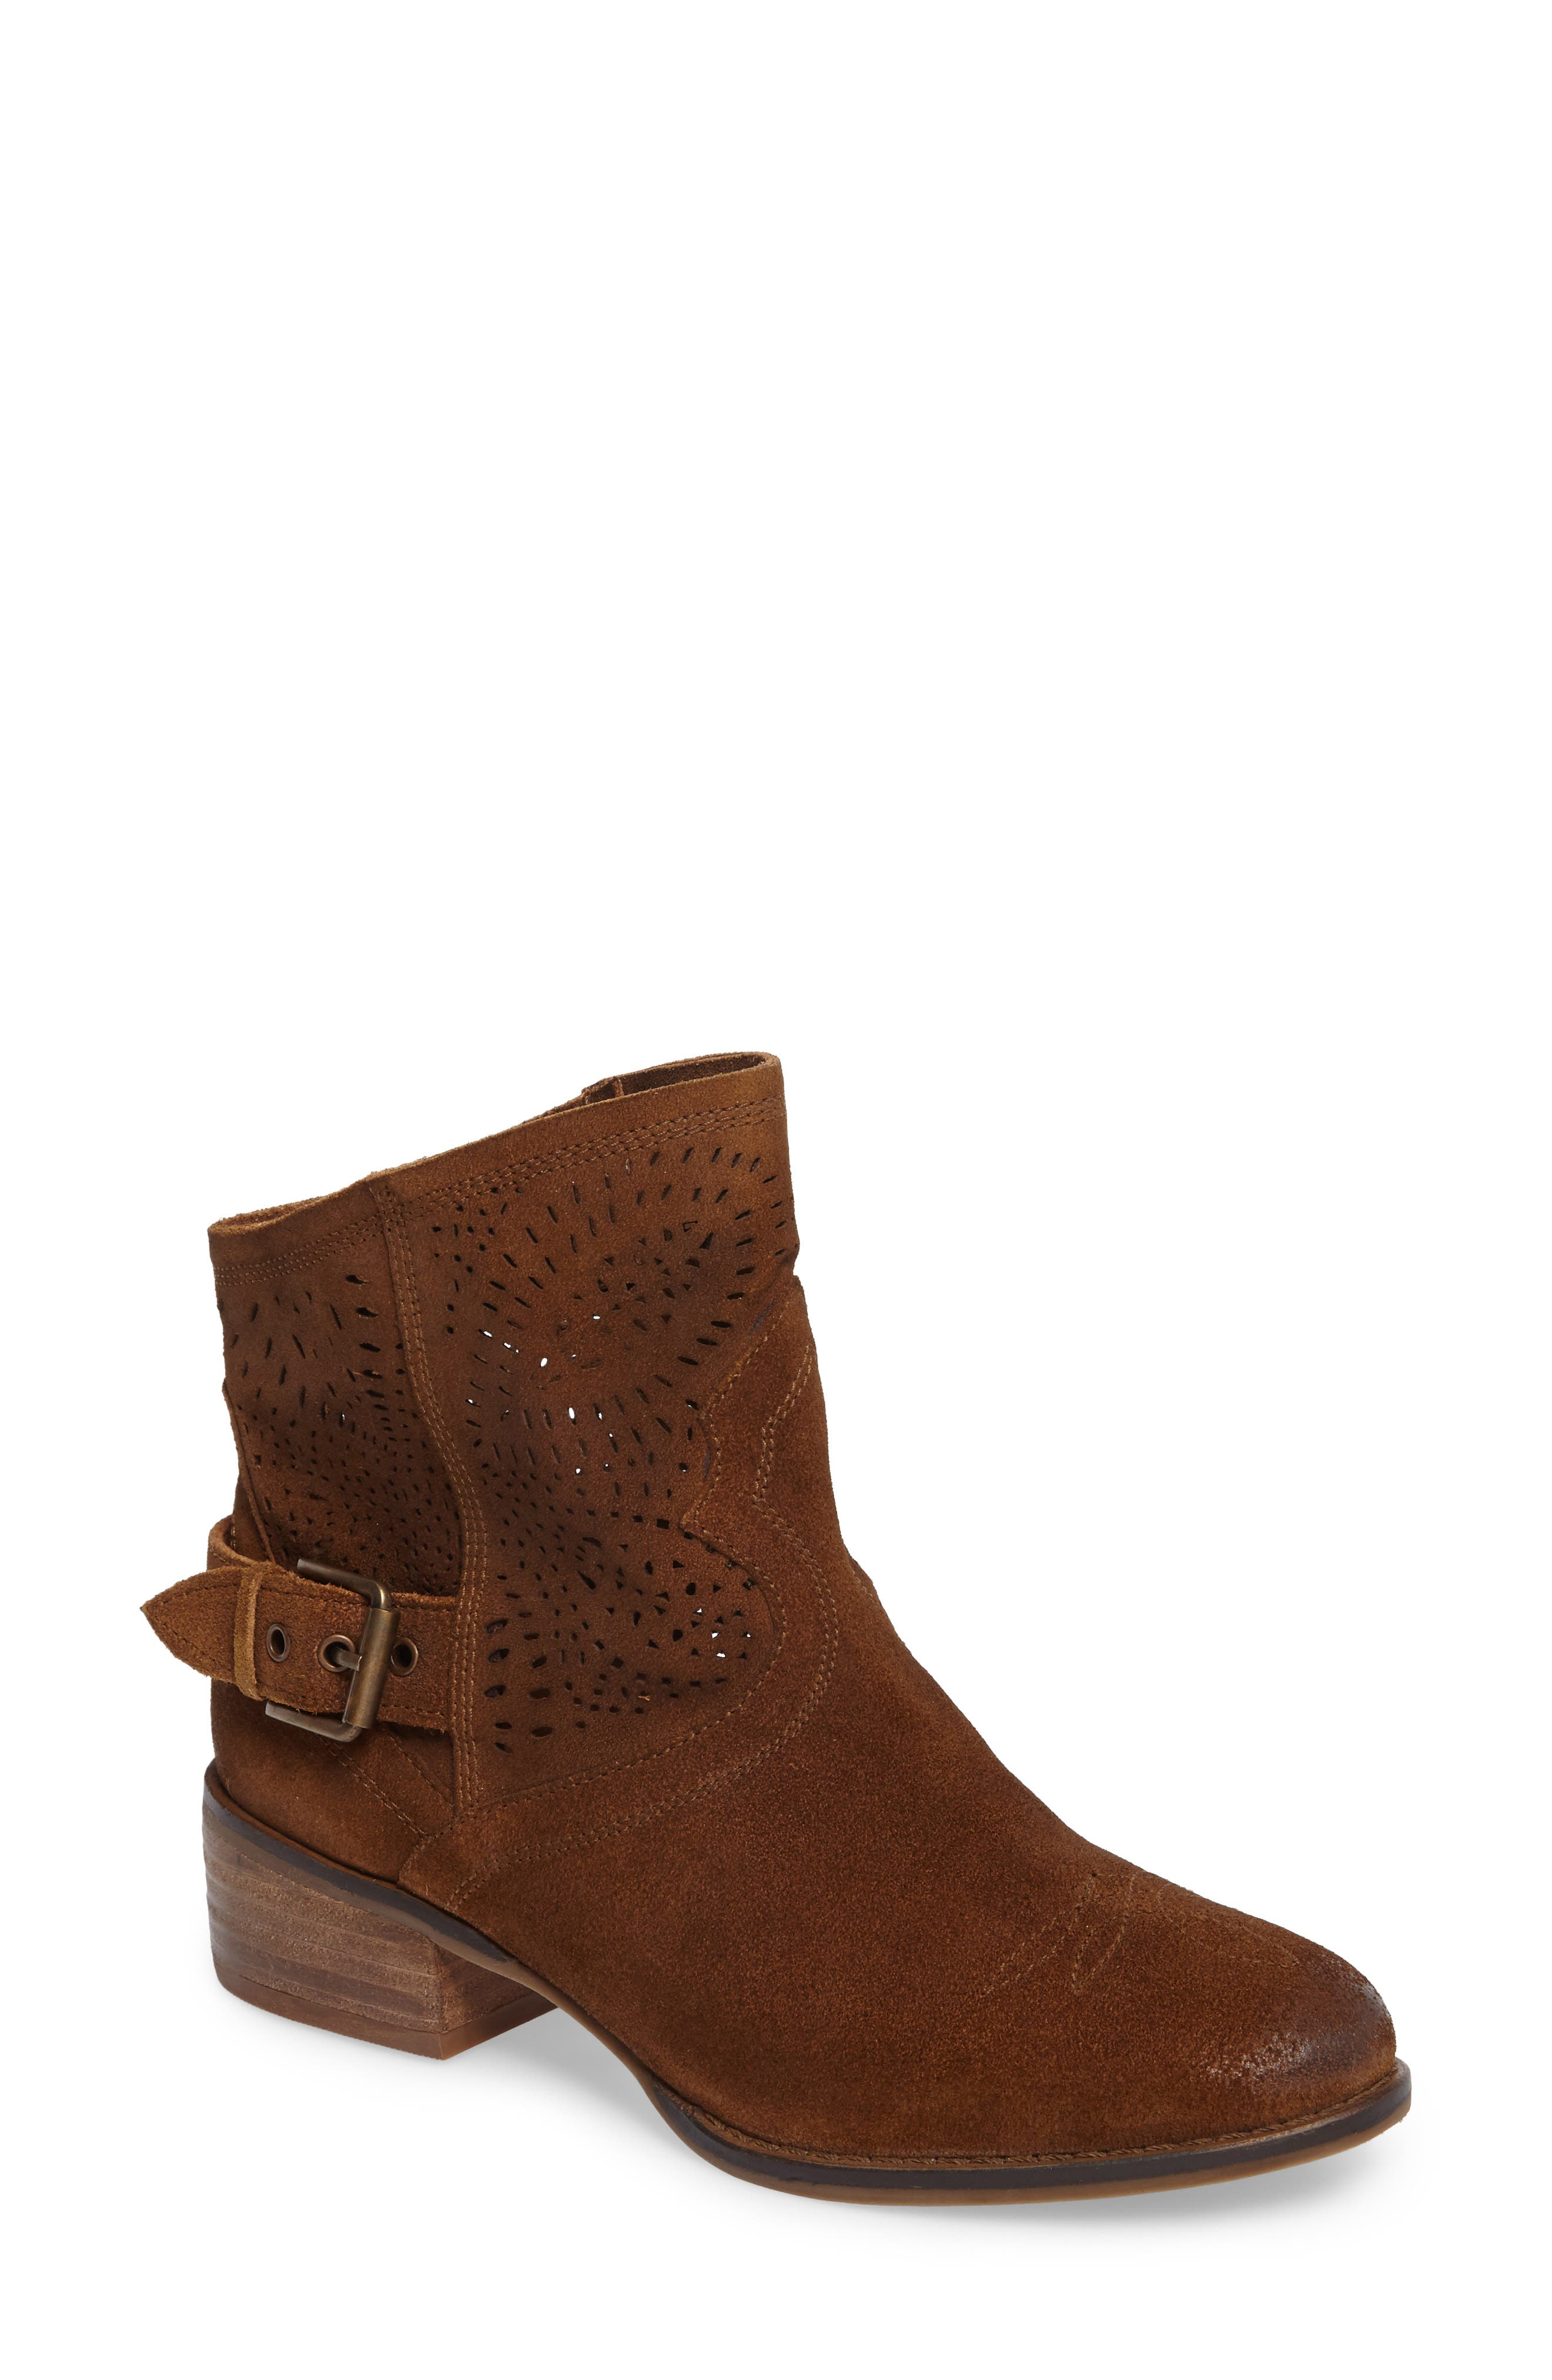 Zoey Perforated Bootie,                             Main thumbnail 2, color,